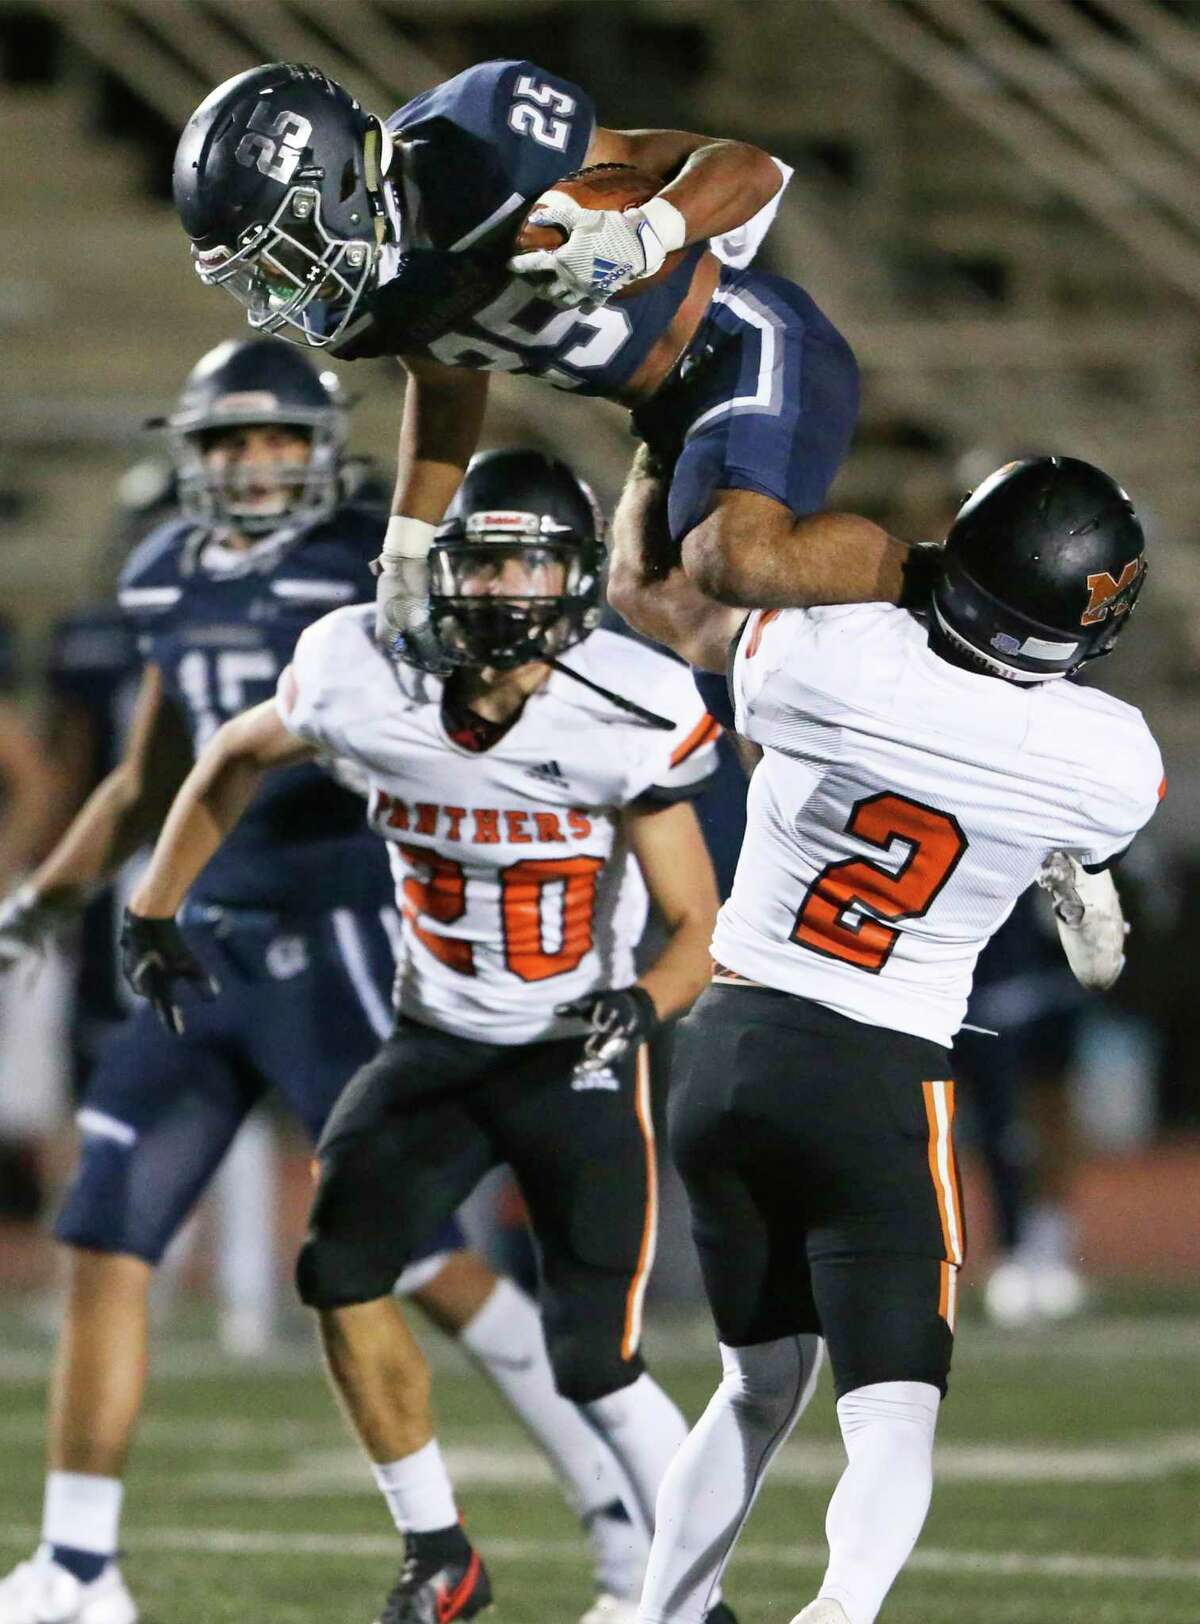 Alex Rodriguez jumps over Tyler Mangum to get some extra yards as Boerne Champion hosts Medina Valley at Greyhound Stadium on Oct.23, 2020.